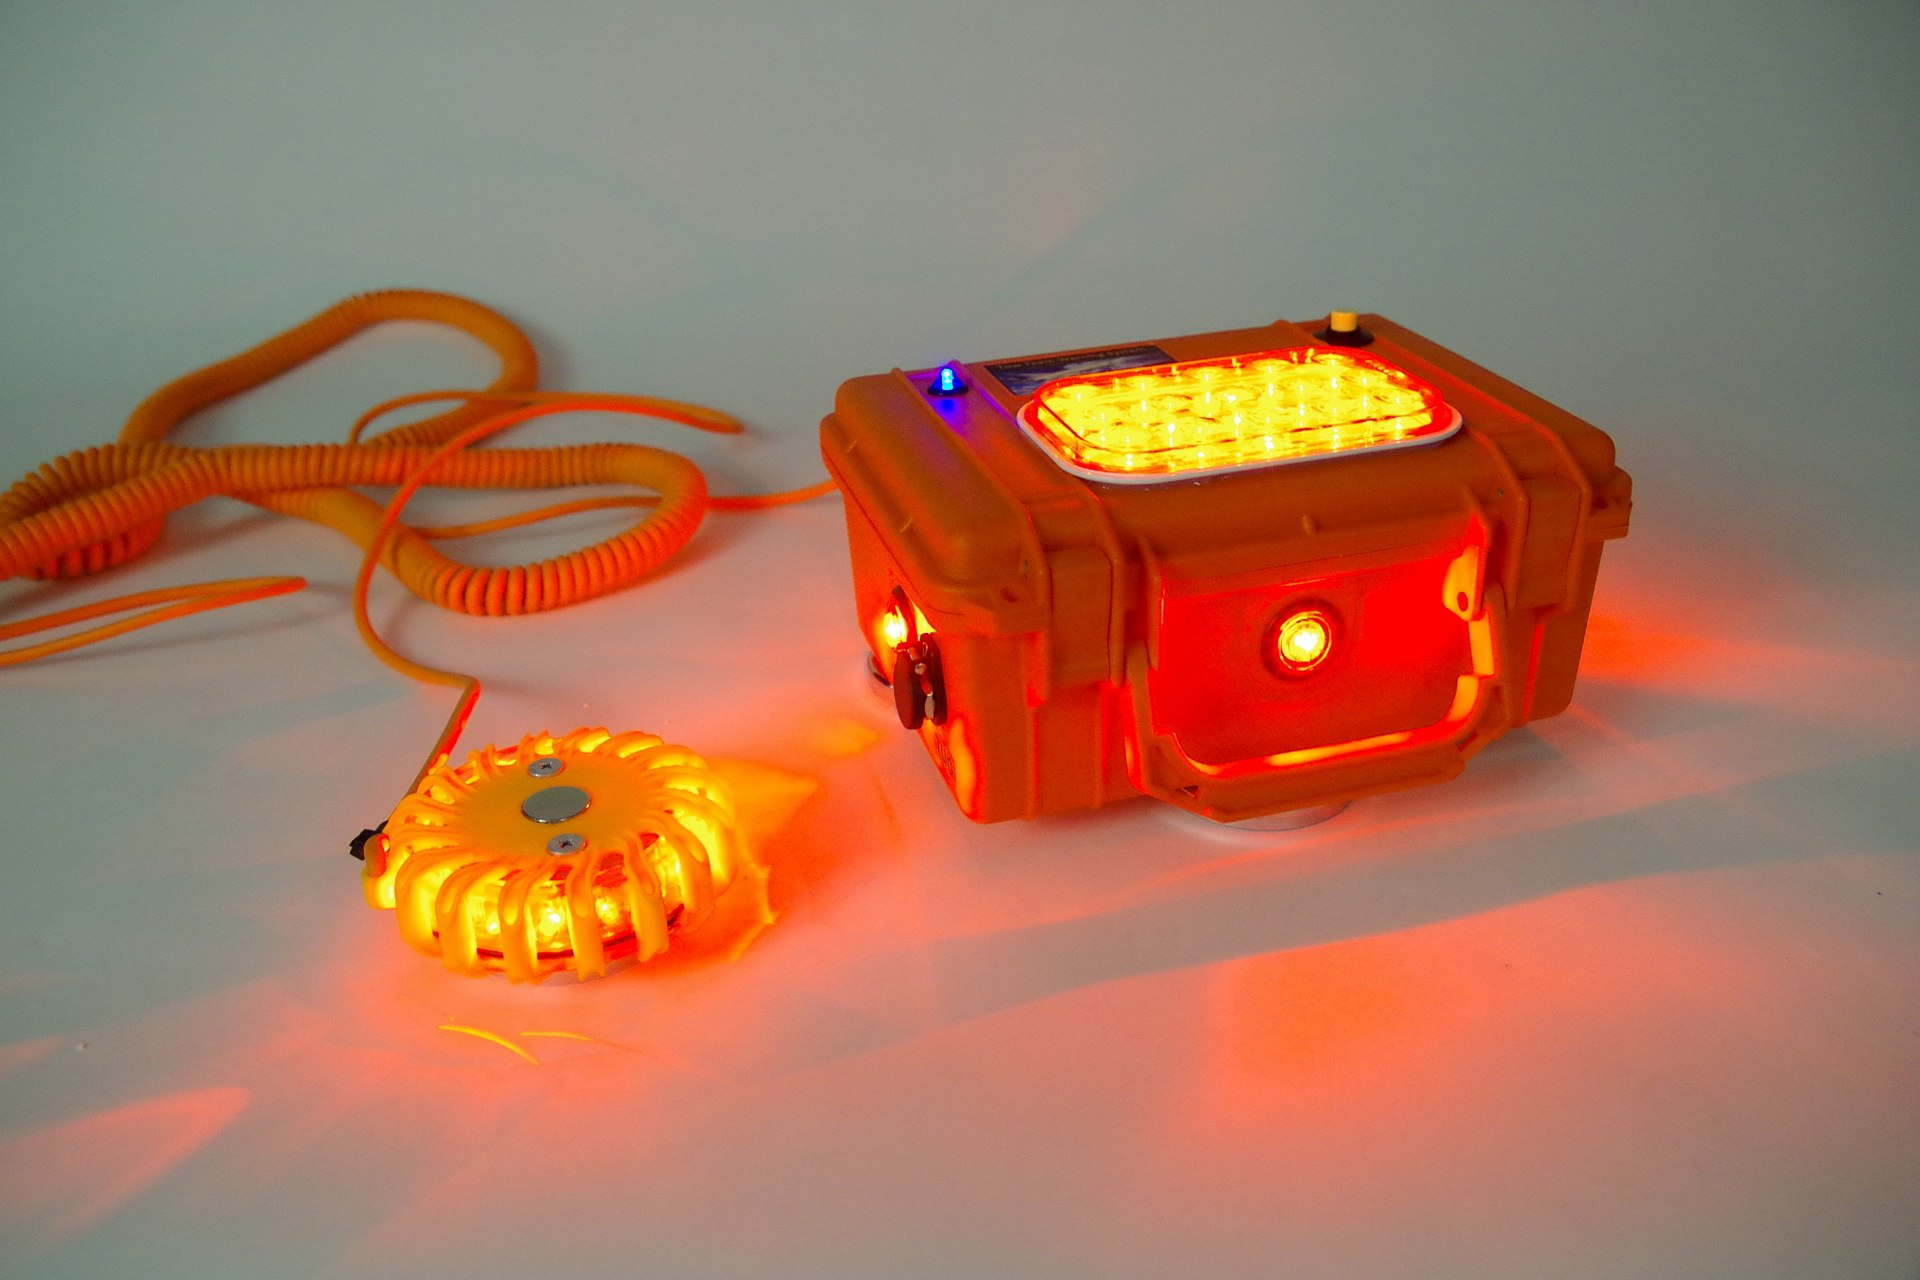 Additional lights and cords can be used for greater visibility.